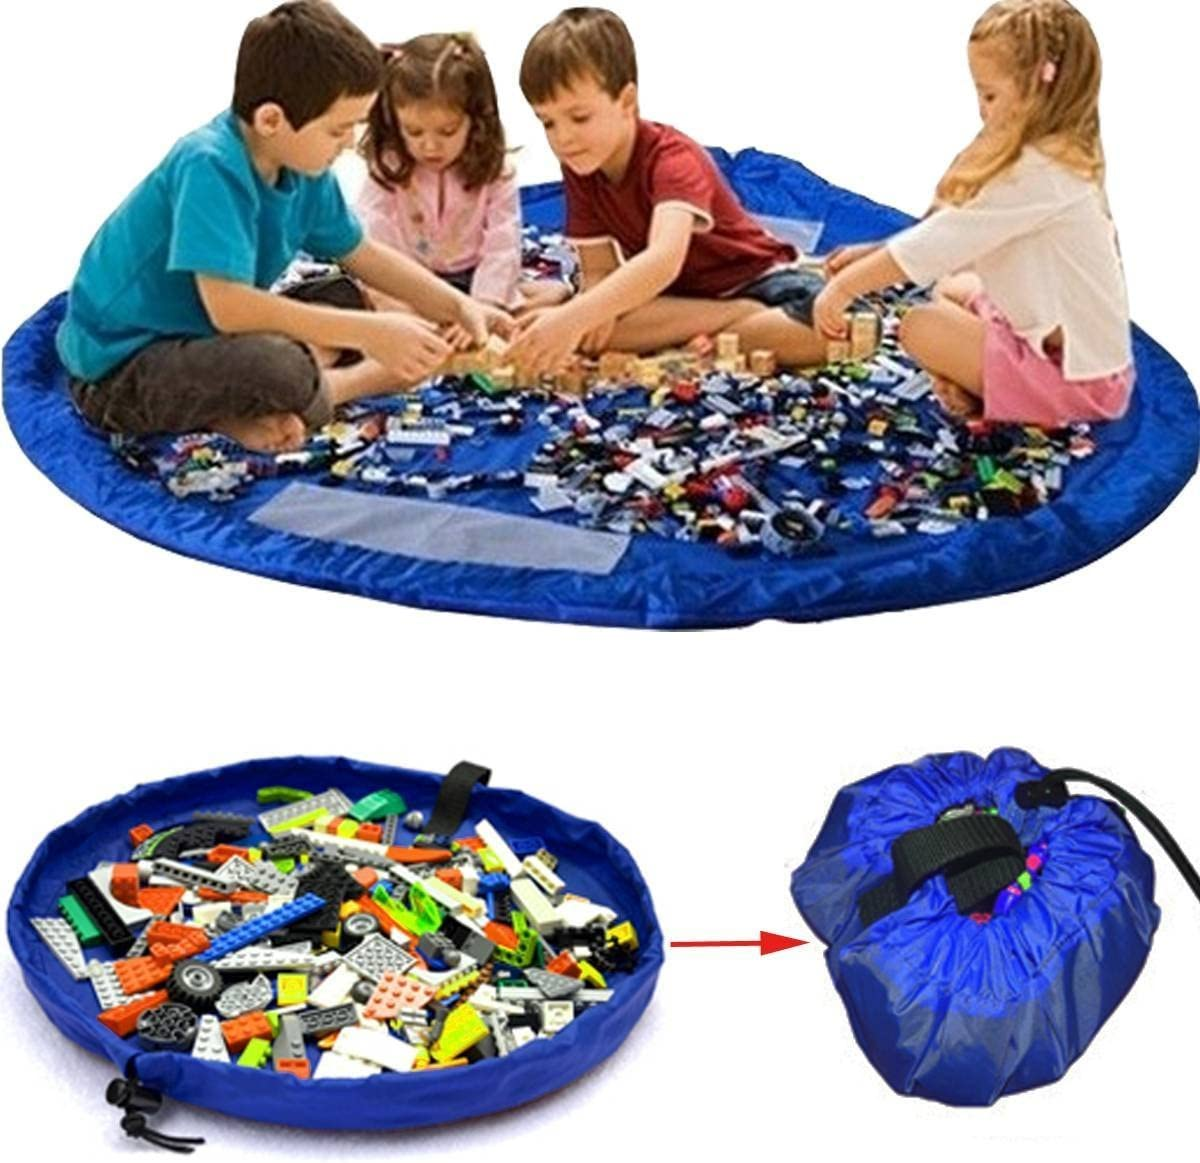 Fast Cleanup Toy and Storage Container for Children Storing Bricks Storage Bag by Drawstring Play Mat for Kids